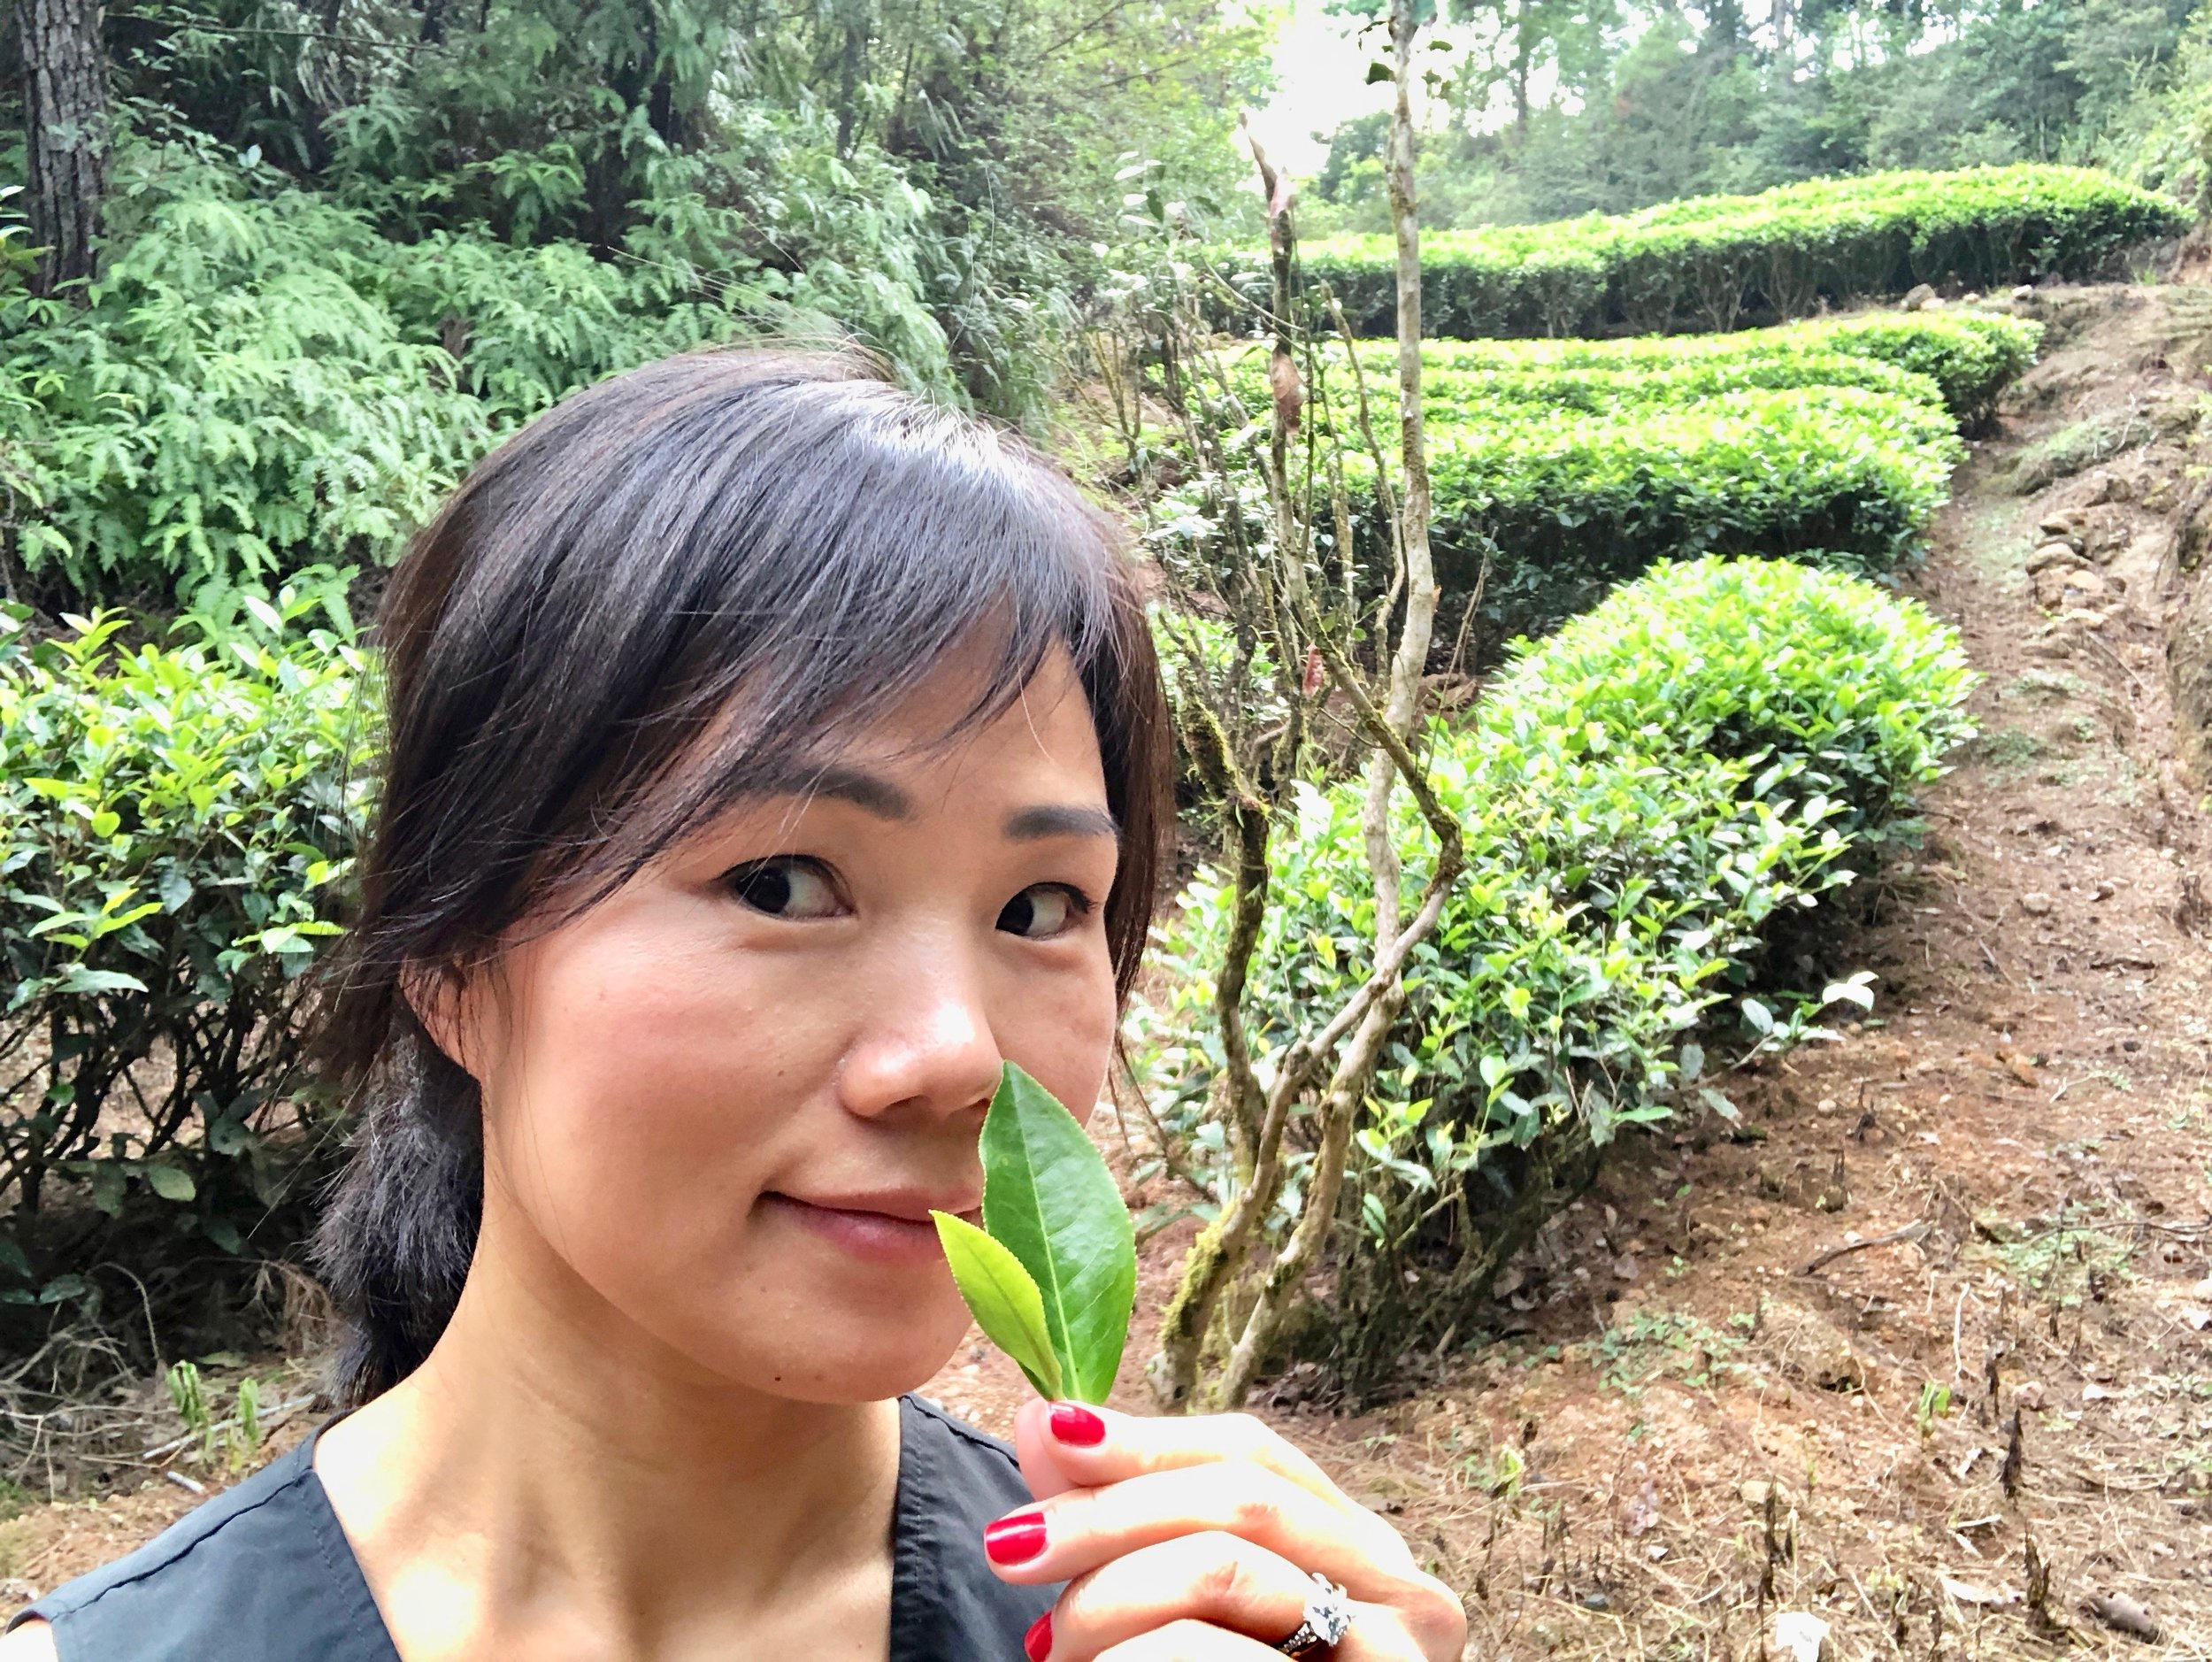 Loving every intoxicating inhalation of tea leaves on Wuyi Mountain!